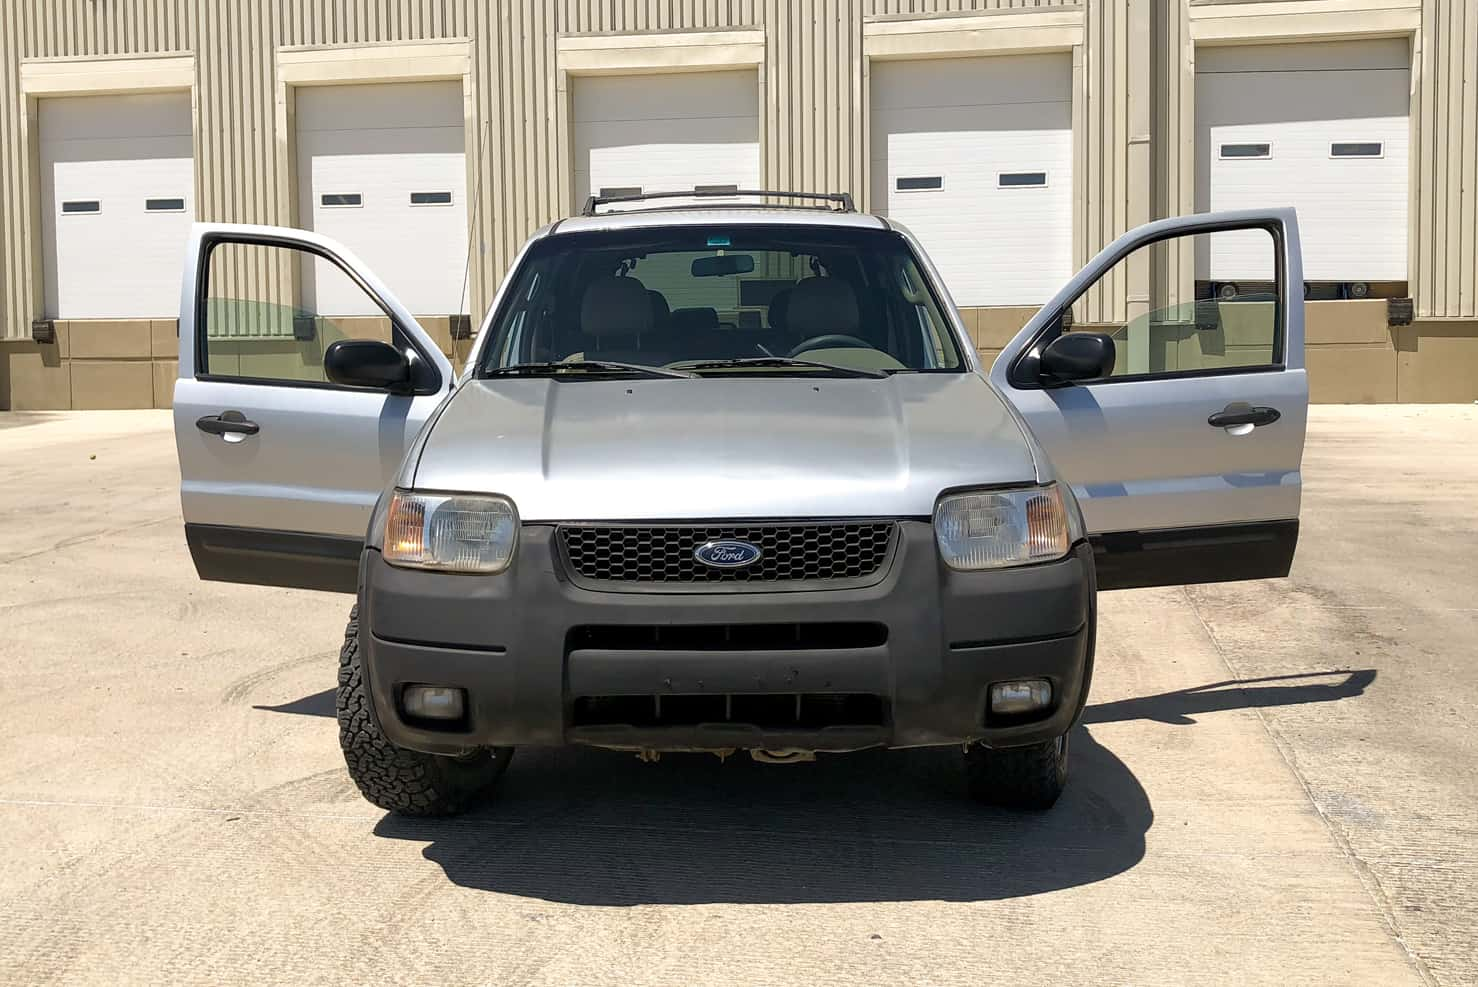 Ford Escape SUV   BBB Rent a Car